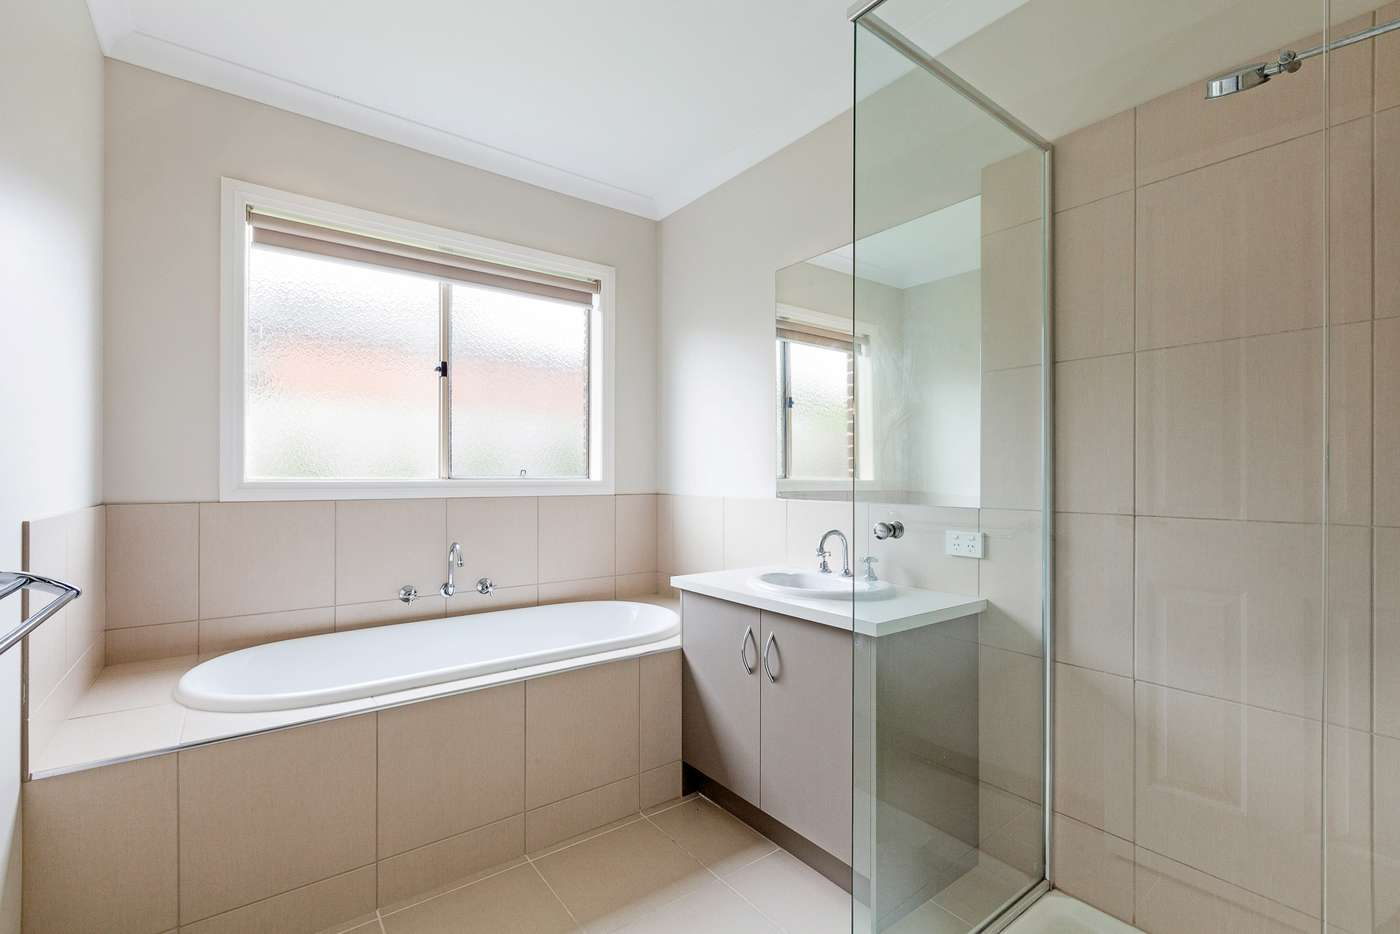 Sixth view of Homely house listing, 4 Tallulah Avenue, Doreen VIC 3754